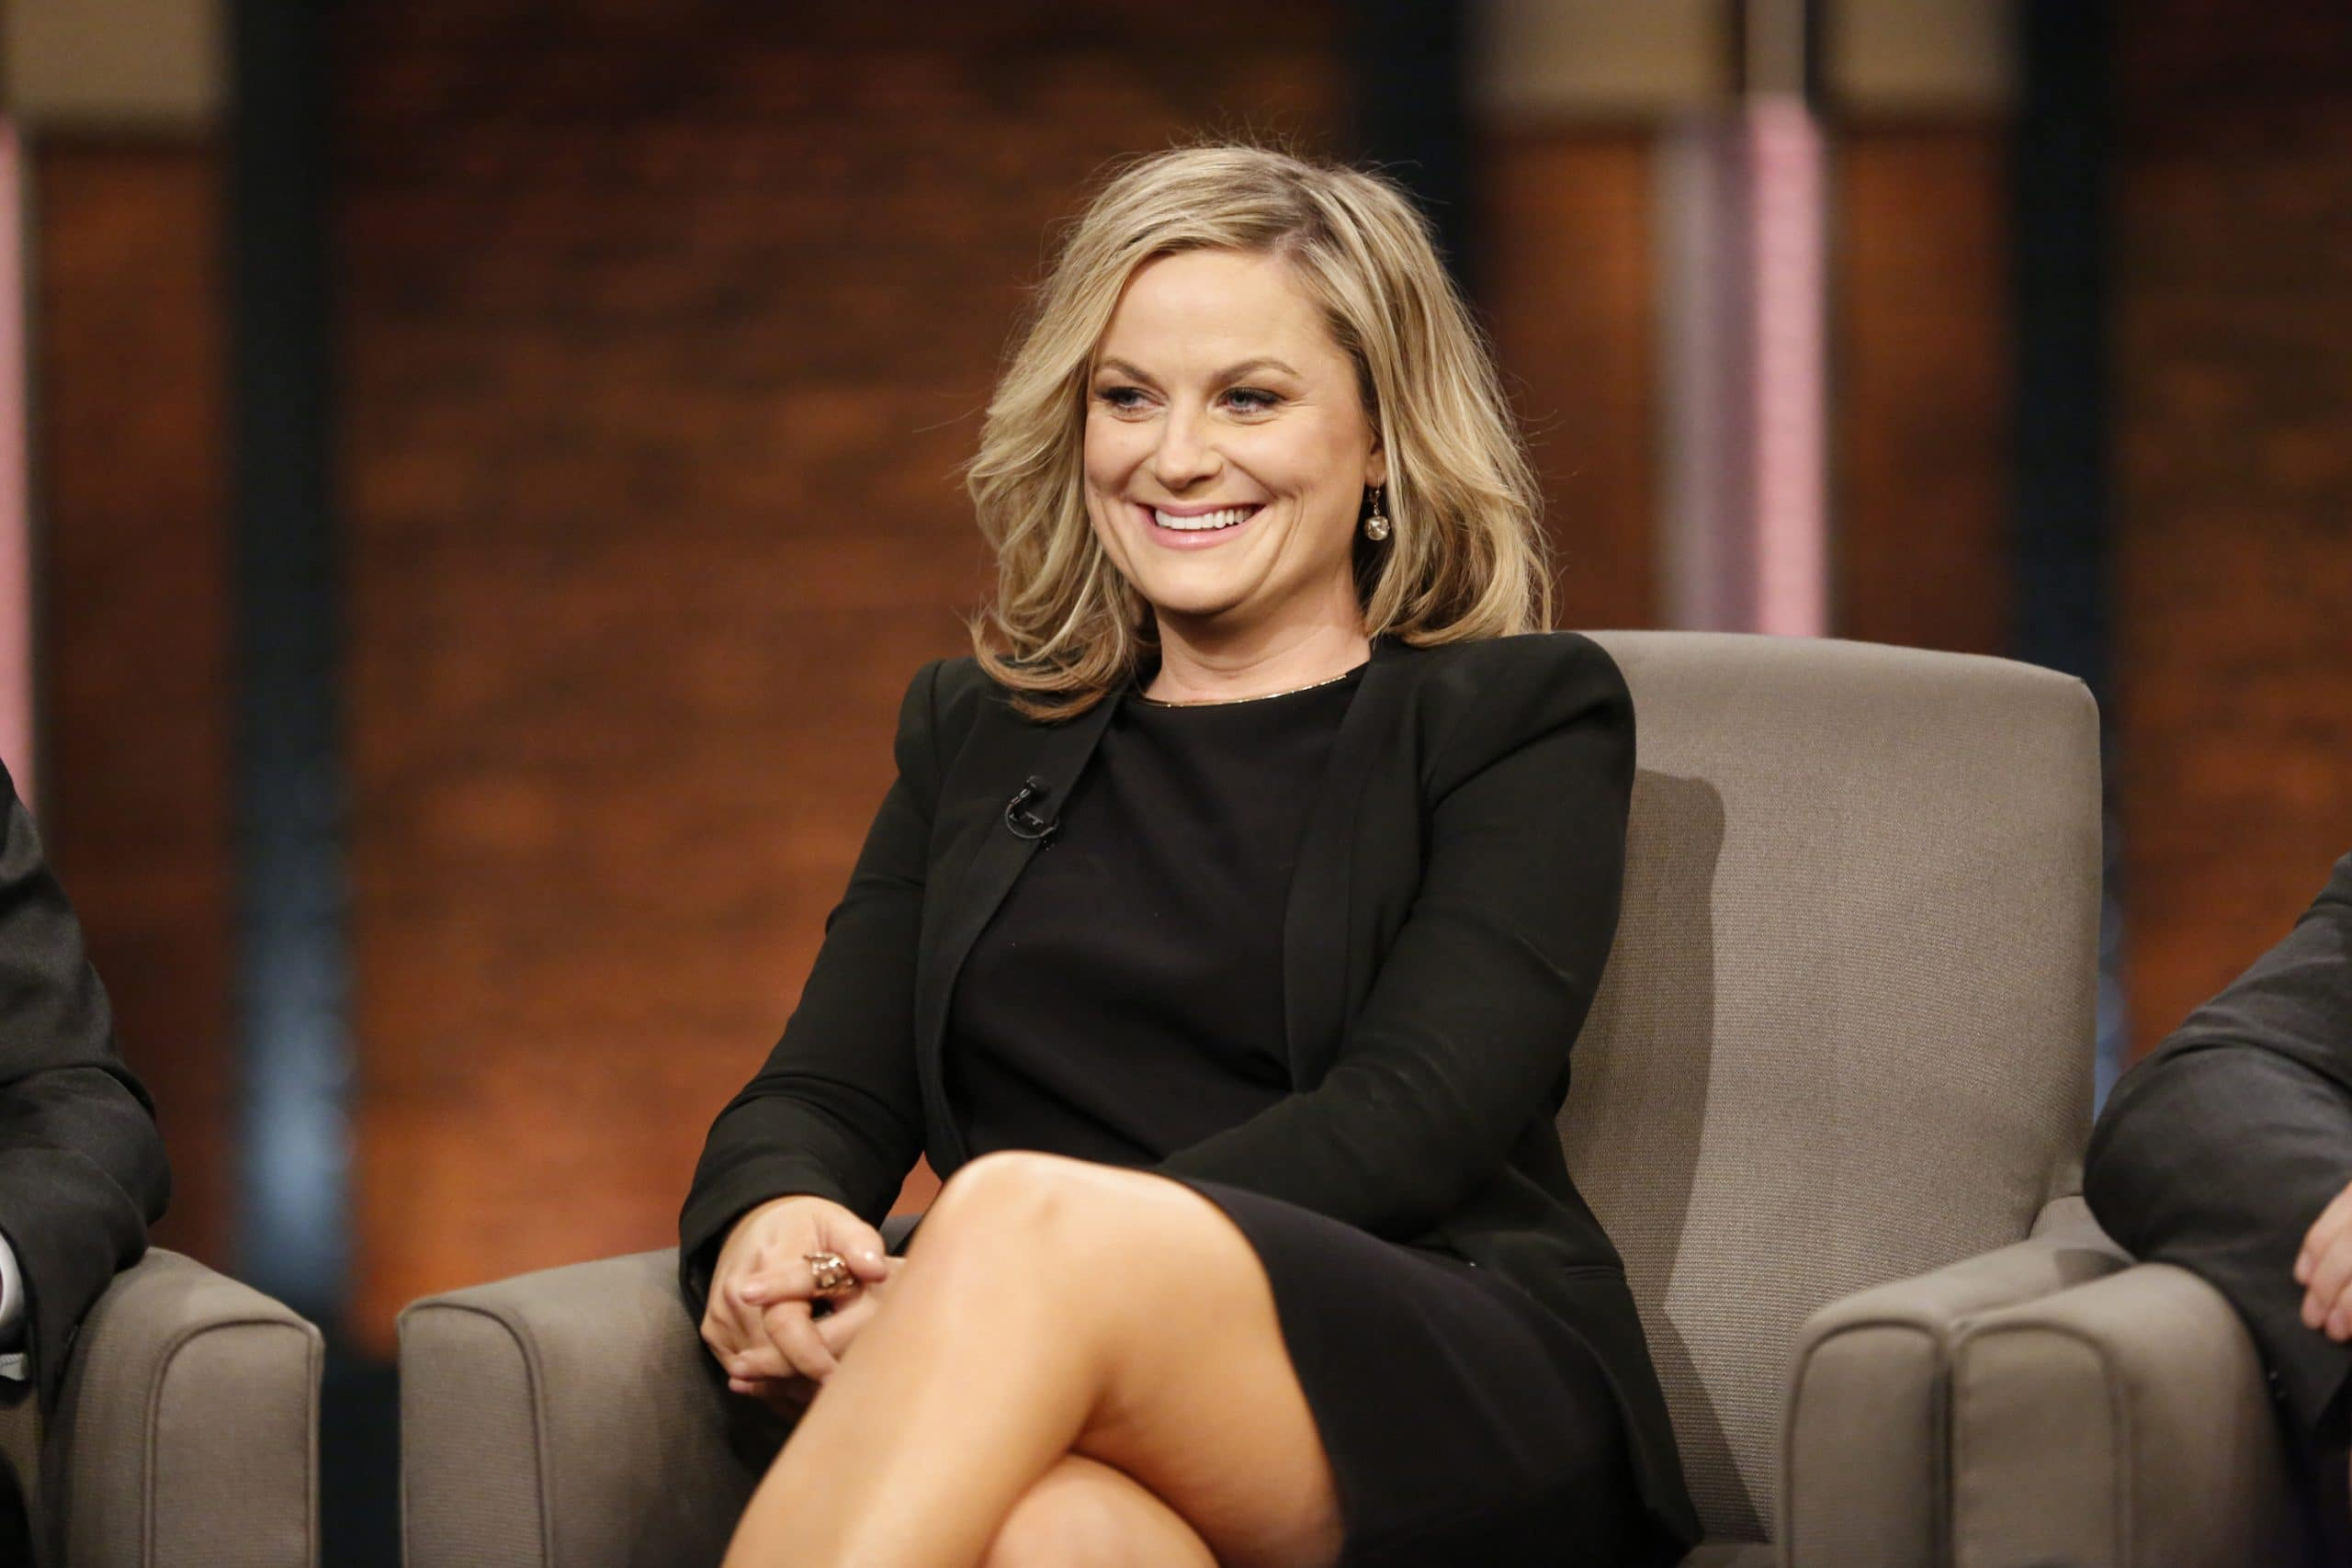 Amy Poehler American Actress, Comedian, Director, Producer and Writer